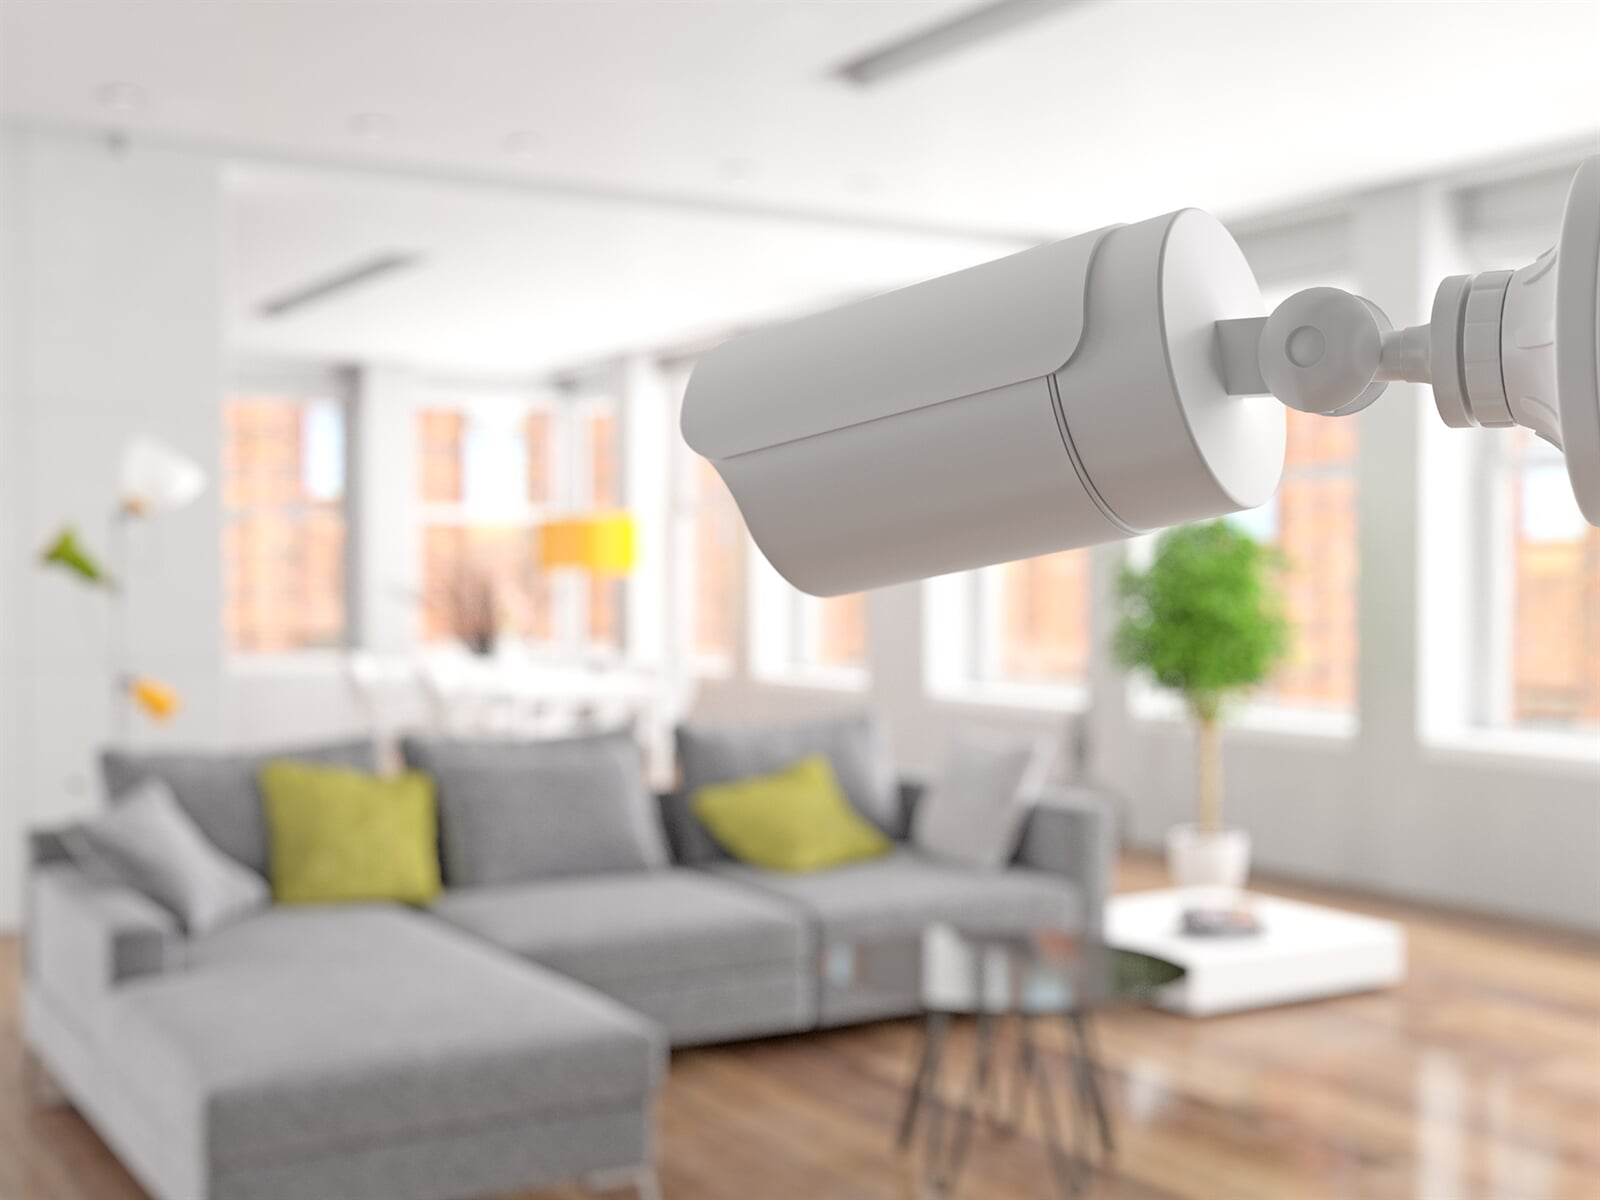 Surveillance-in-the-Living-room-505898754_5257x3943 (1)